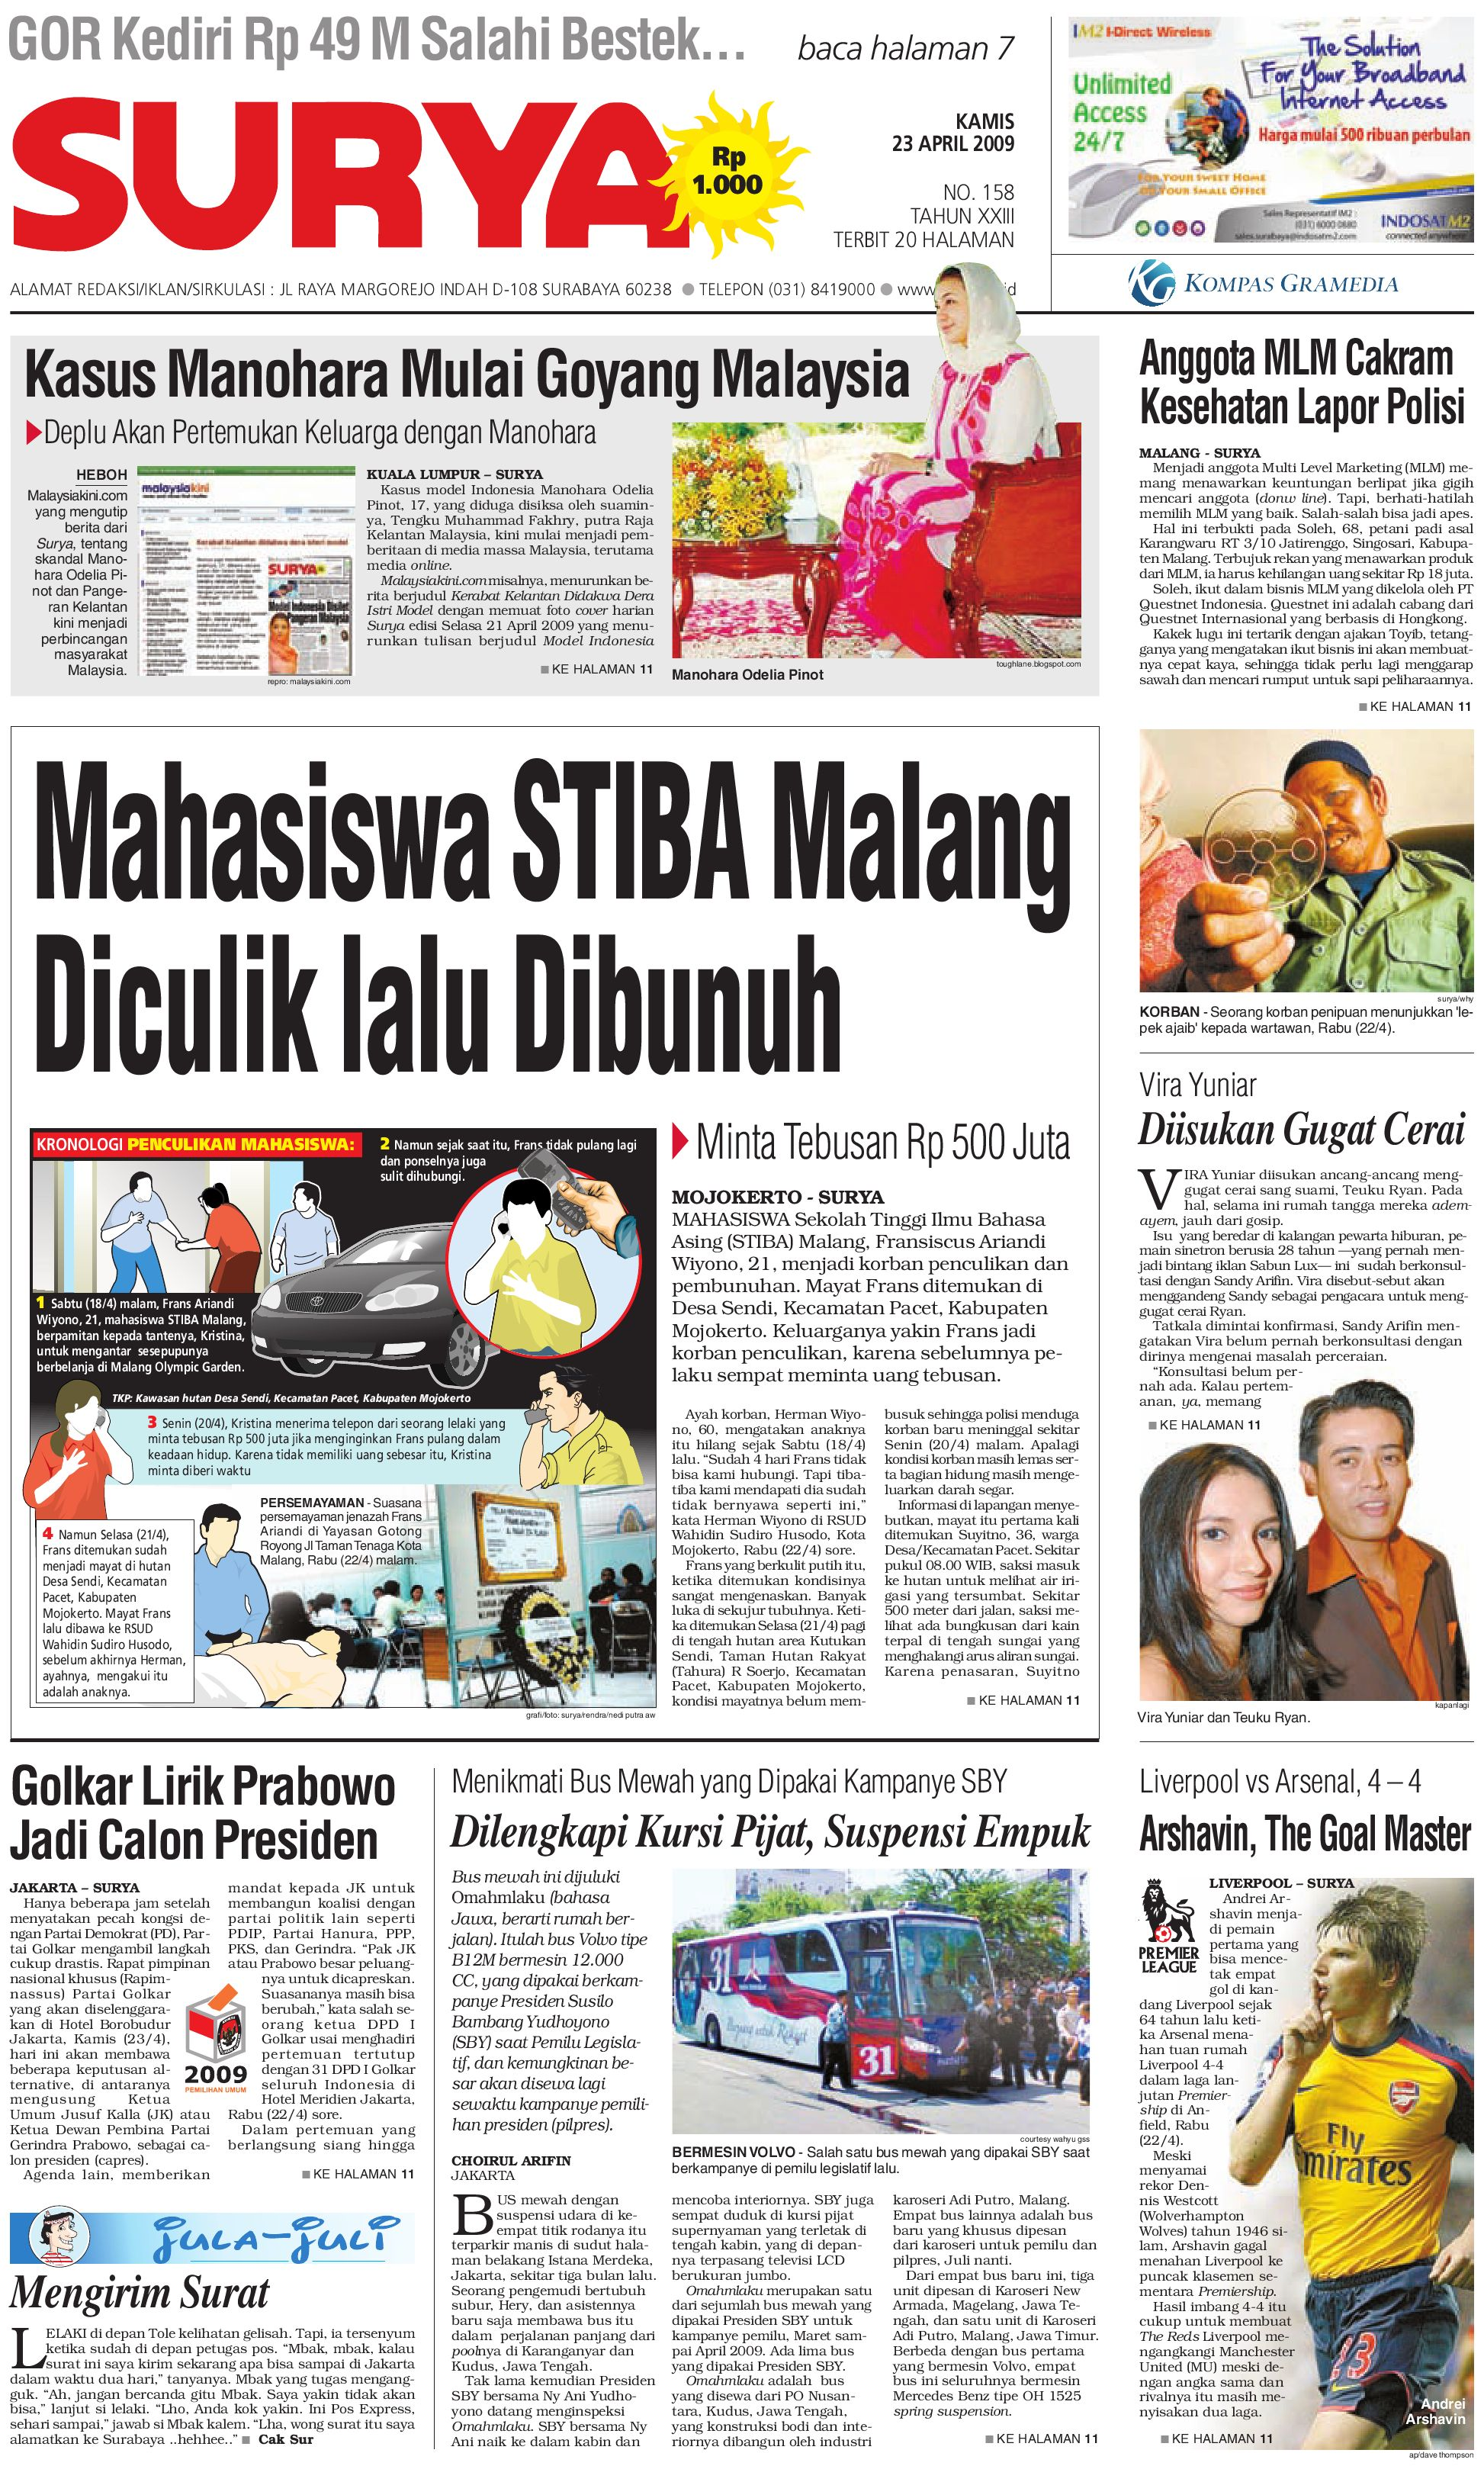 Surya Edisi Cetak 23 April 2009 by Harian SURYA - issuu 9a1591fb9d